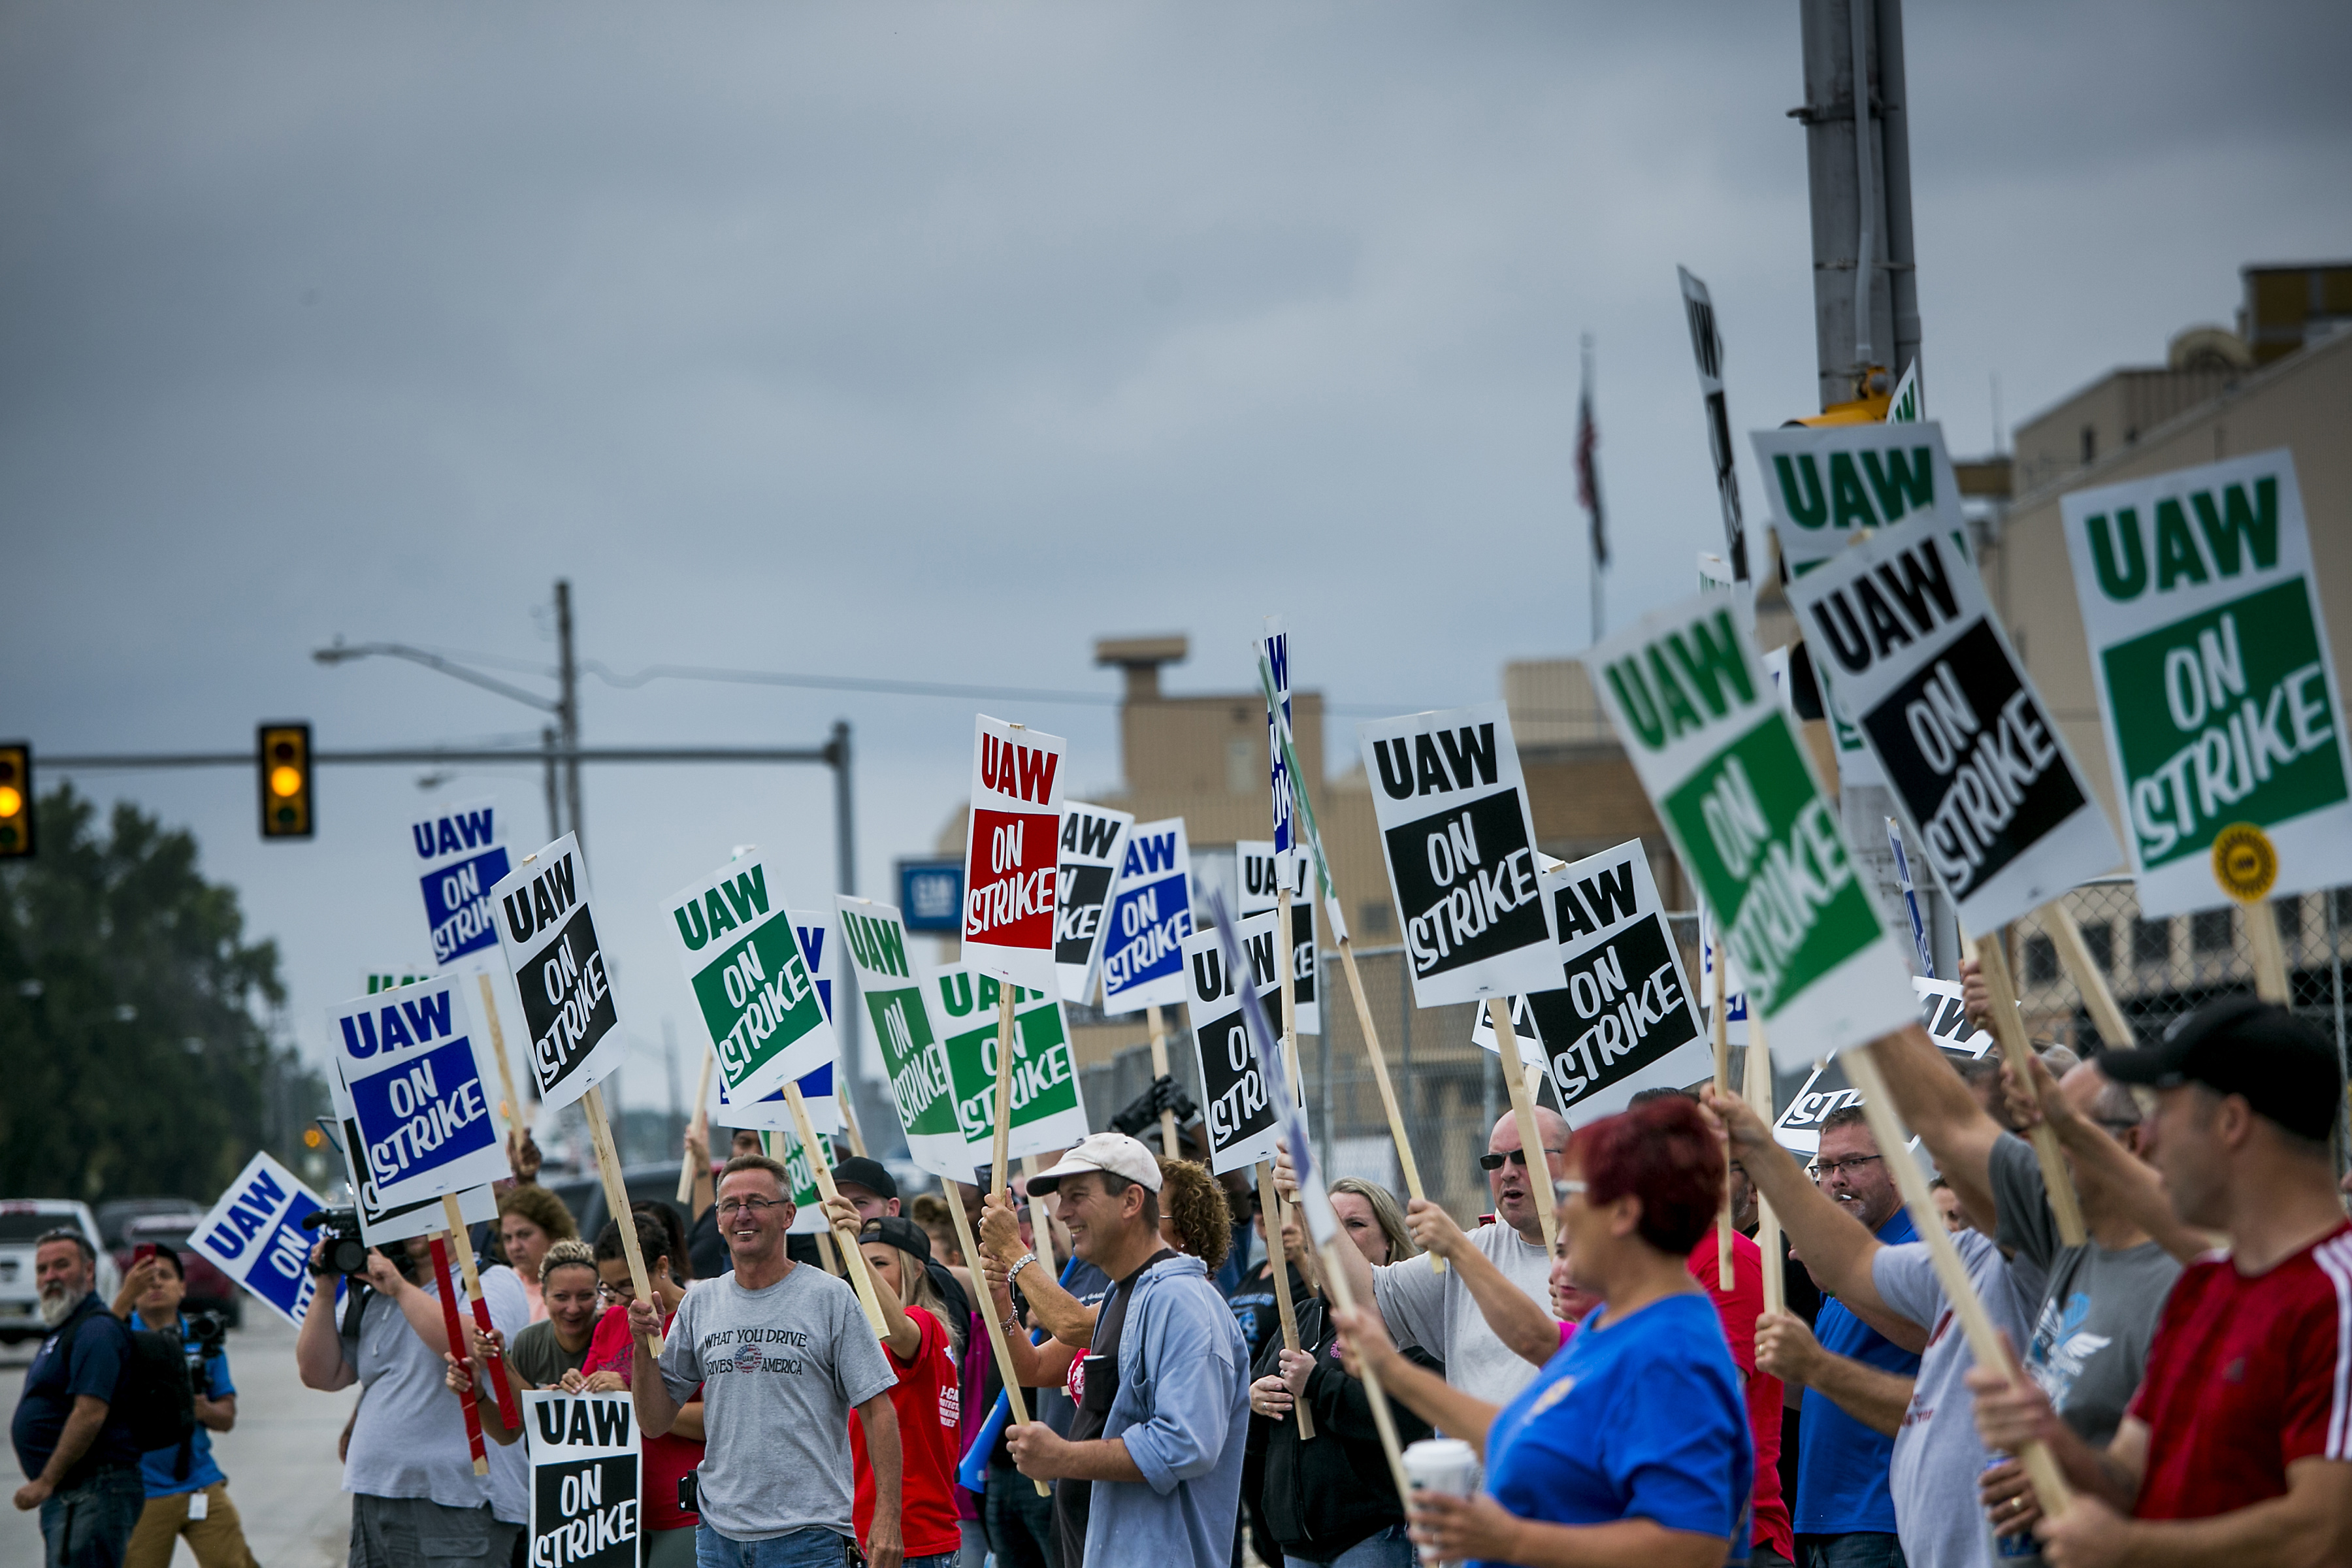 Demonstrators holds signs during a United Auto Workers (UAW) strike outside the General Motors Co. Flint Assembly plant in Flint, Michigan, U.S., on Monday, Sept. 16, 2019.